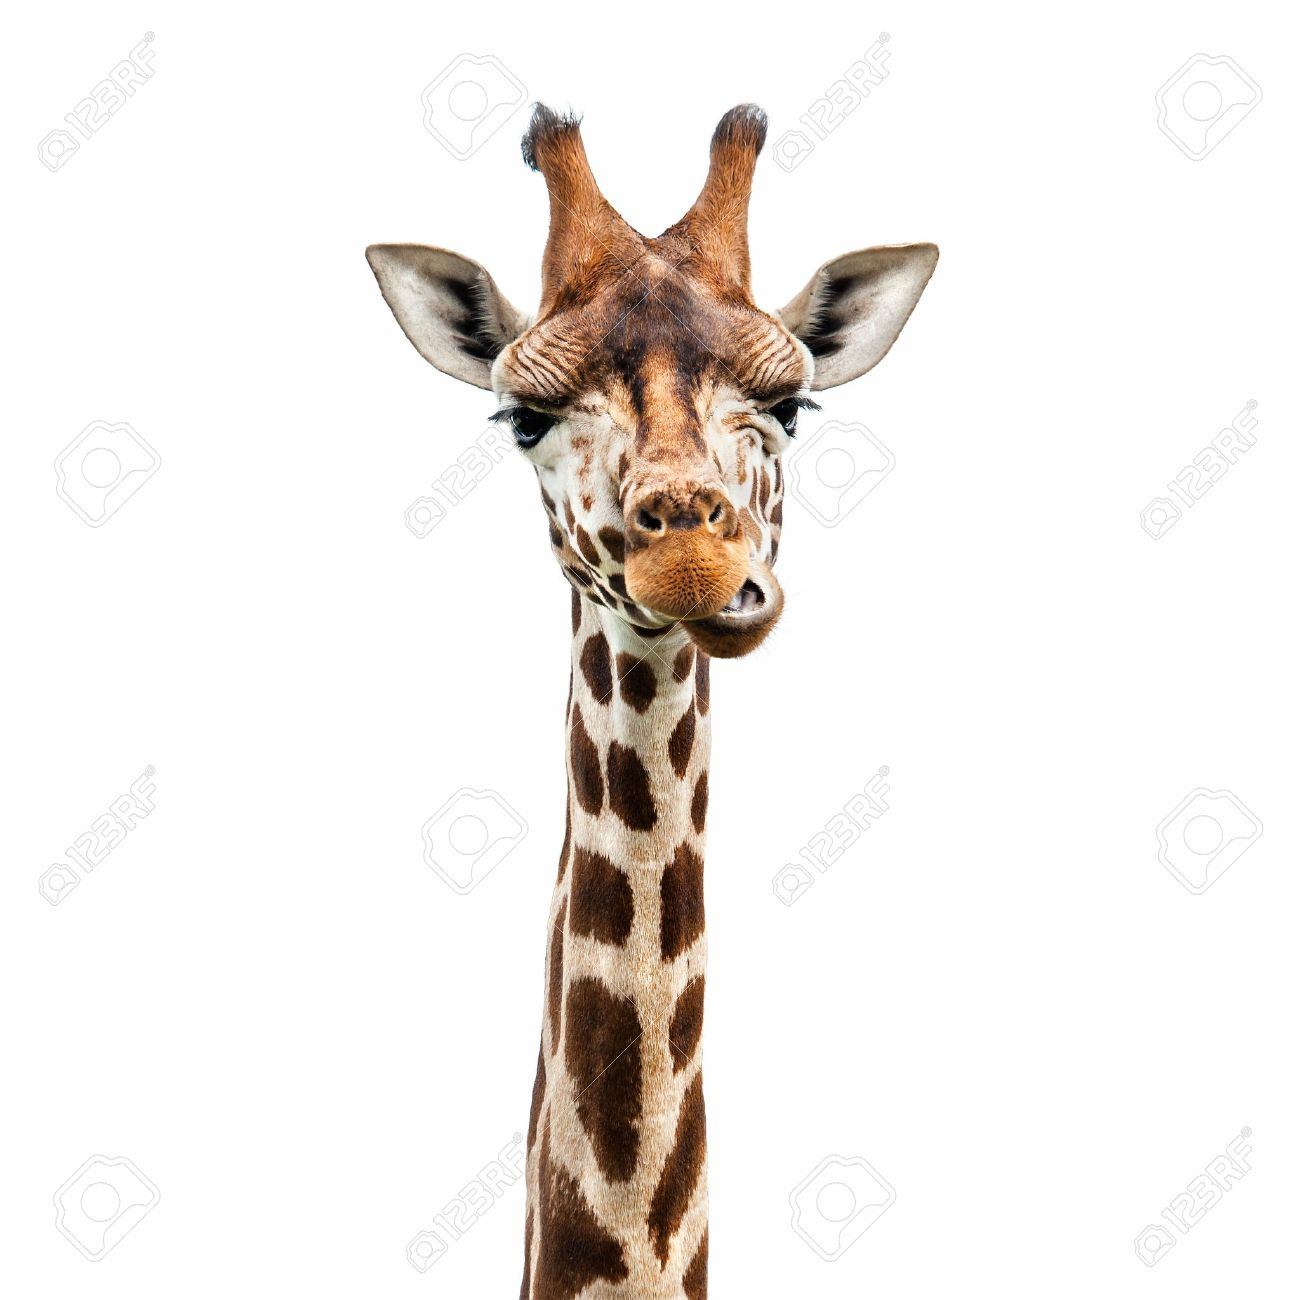 funny giraffe u0027s face stock photo picture and royalty free image